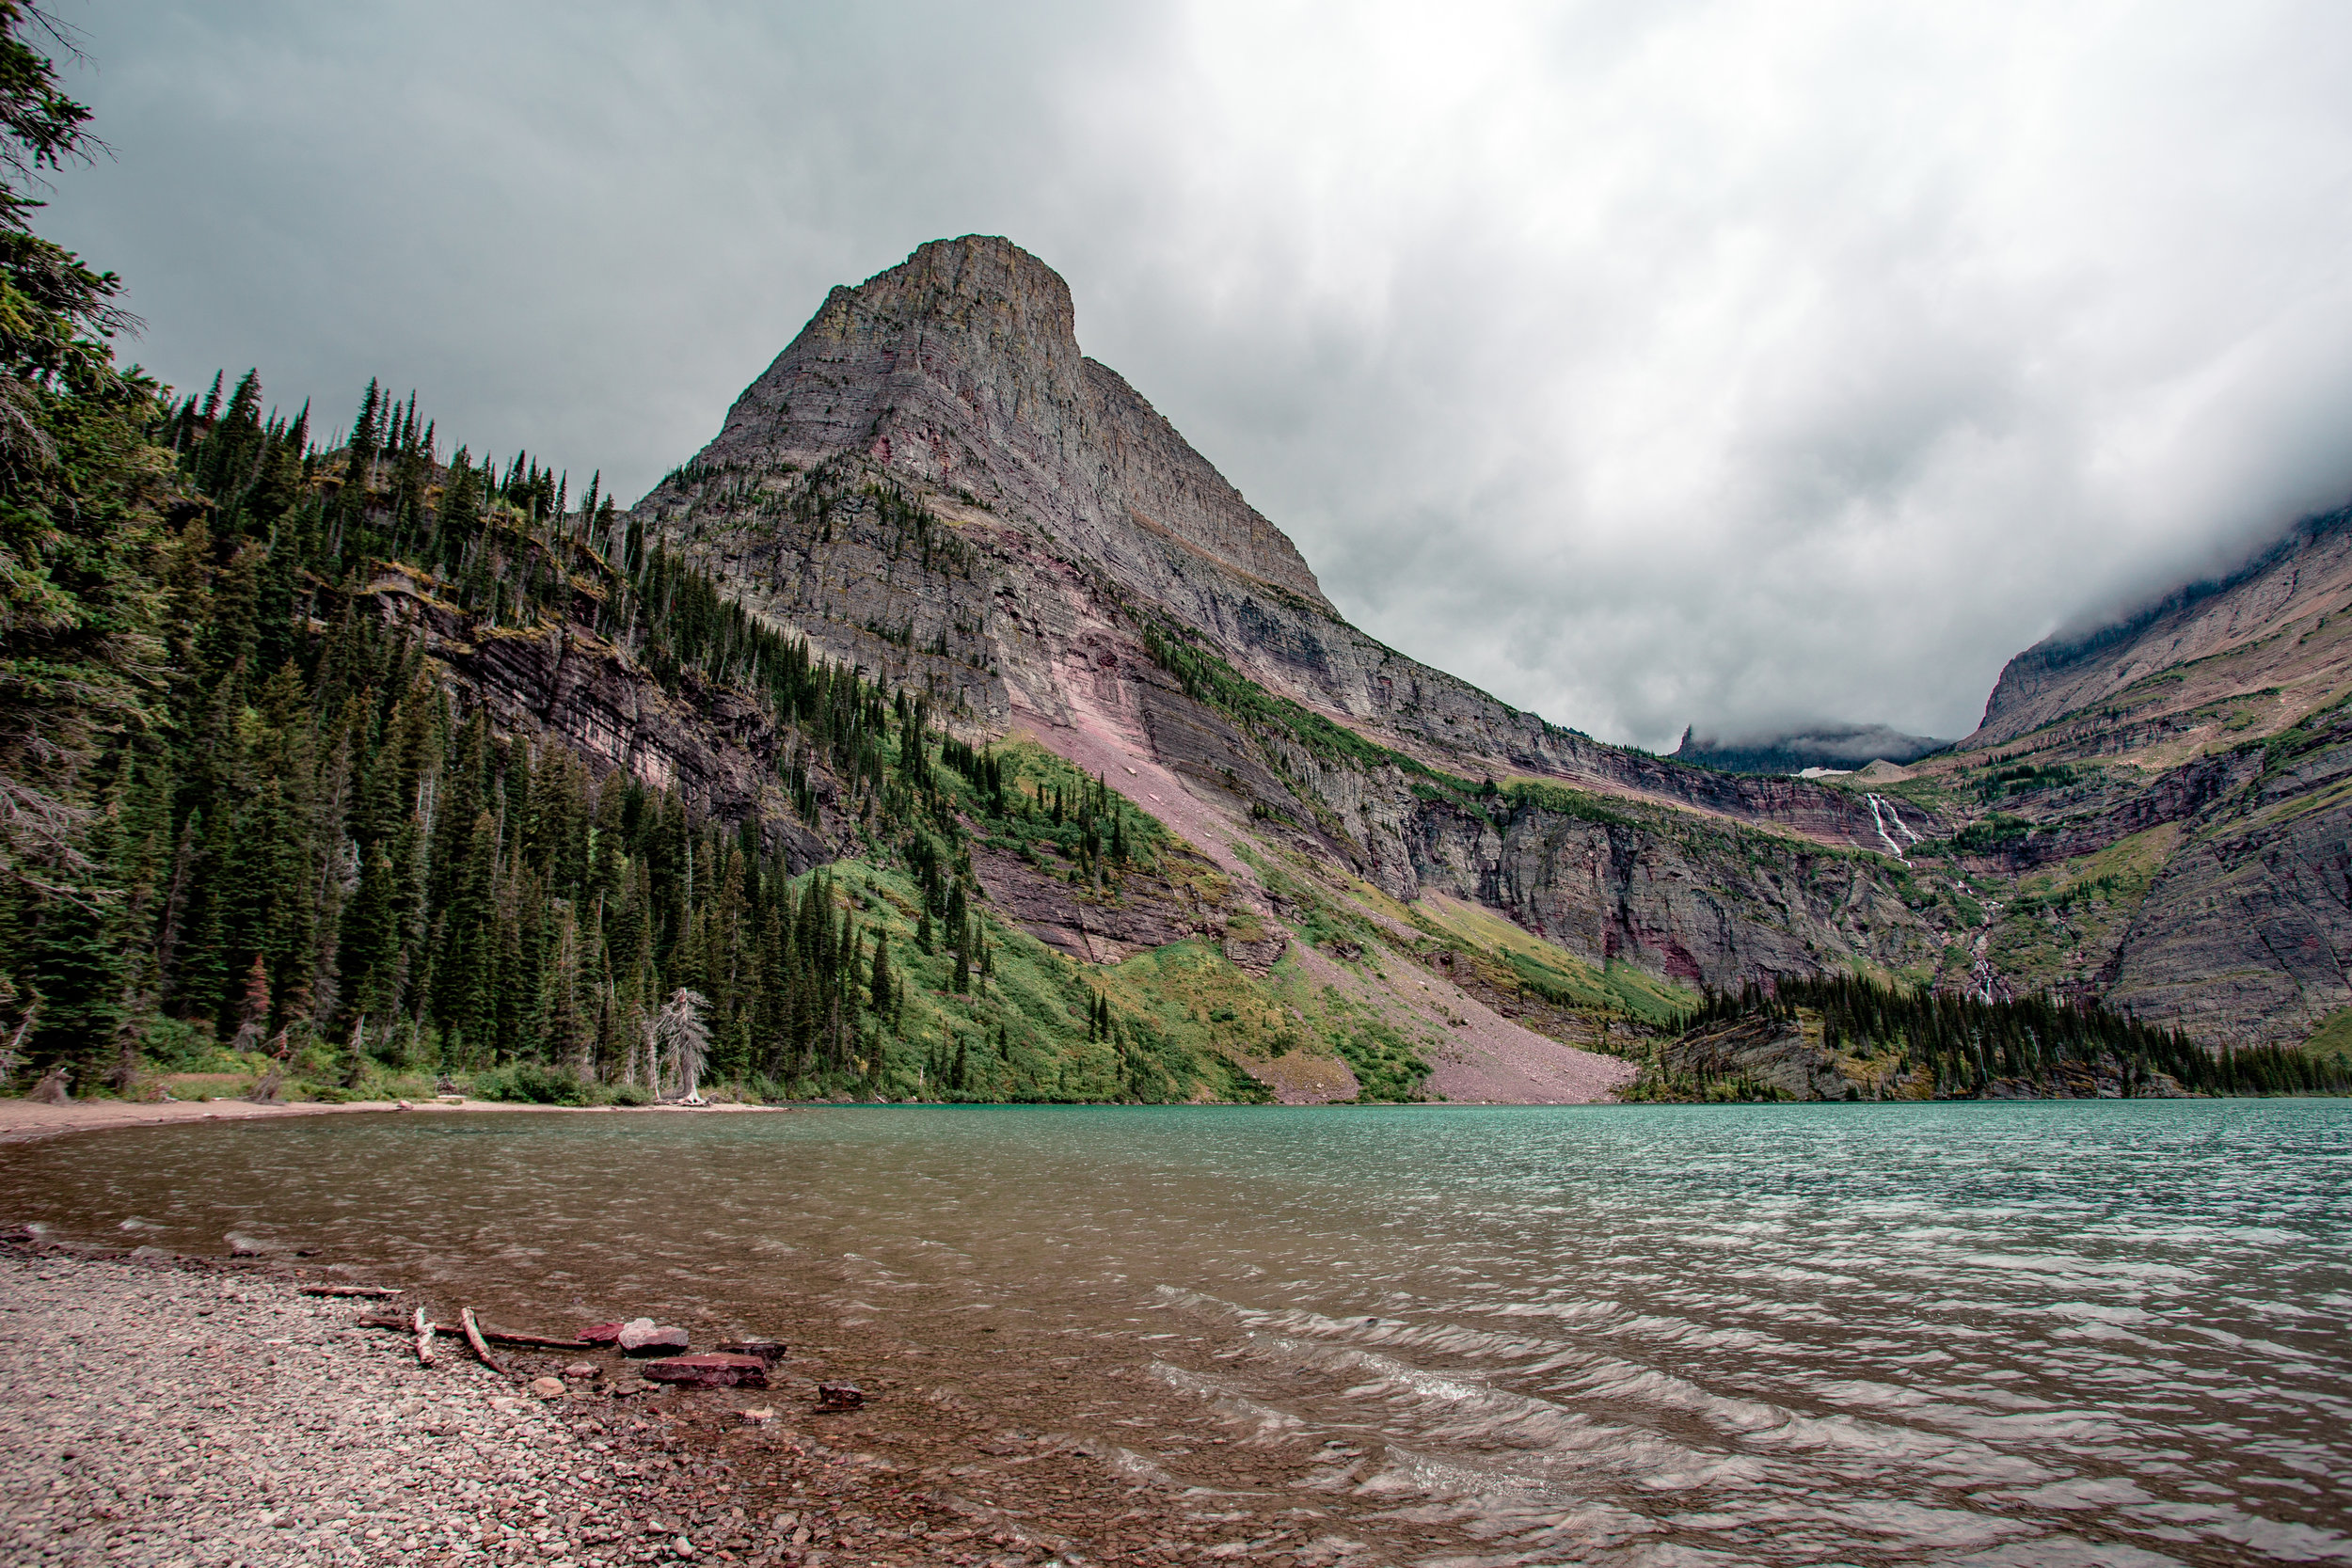 The milky aqua waters of Grinnell Lake